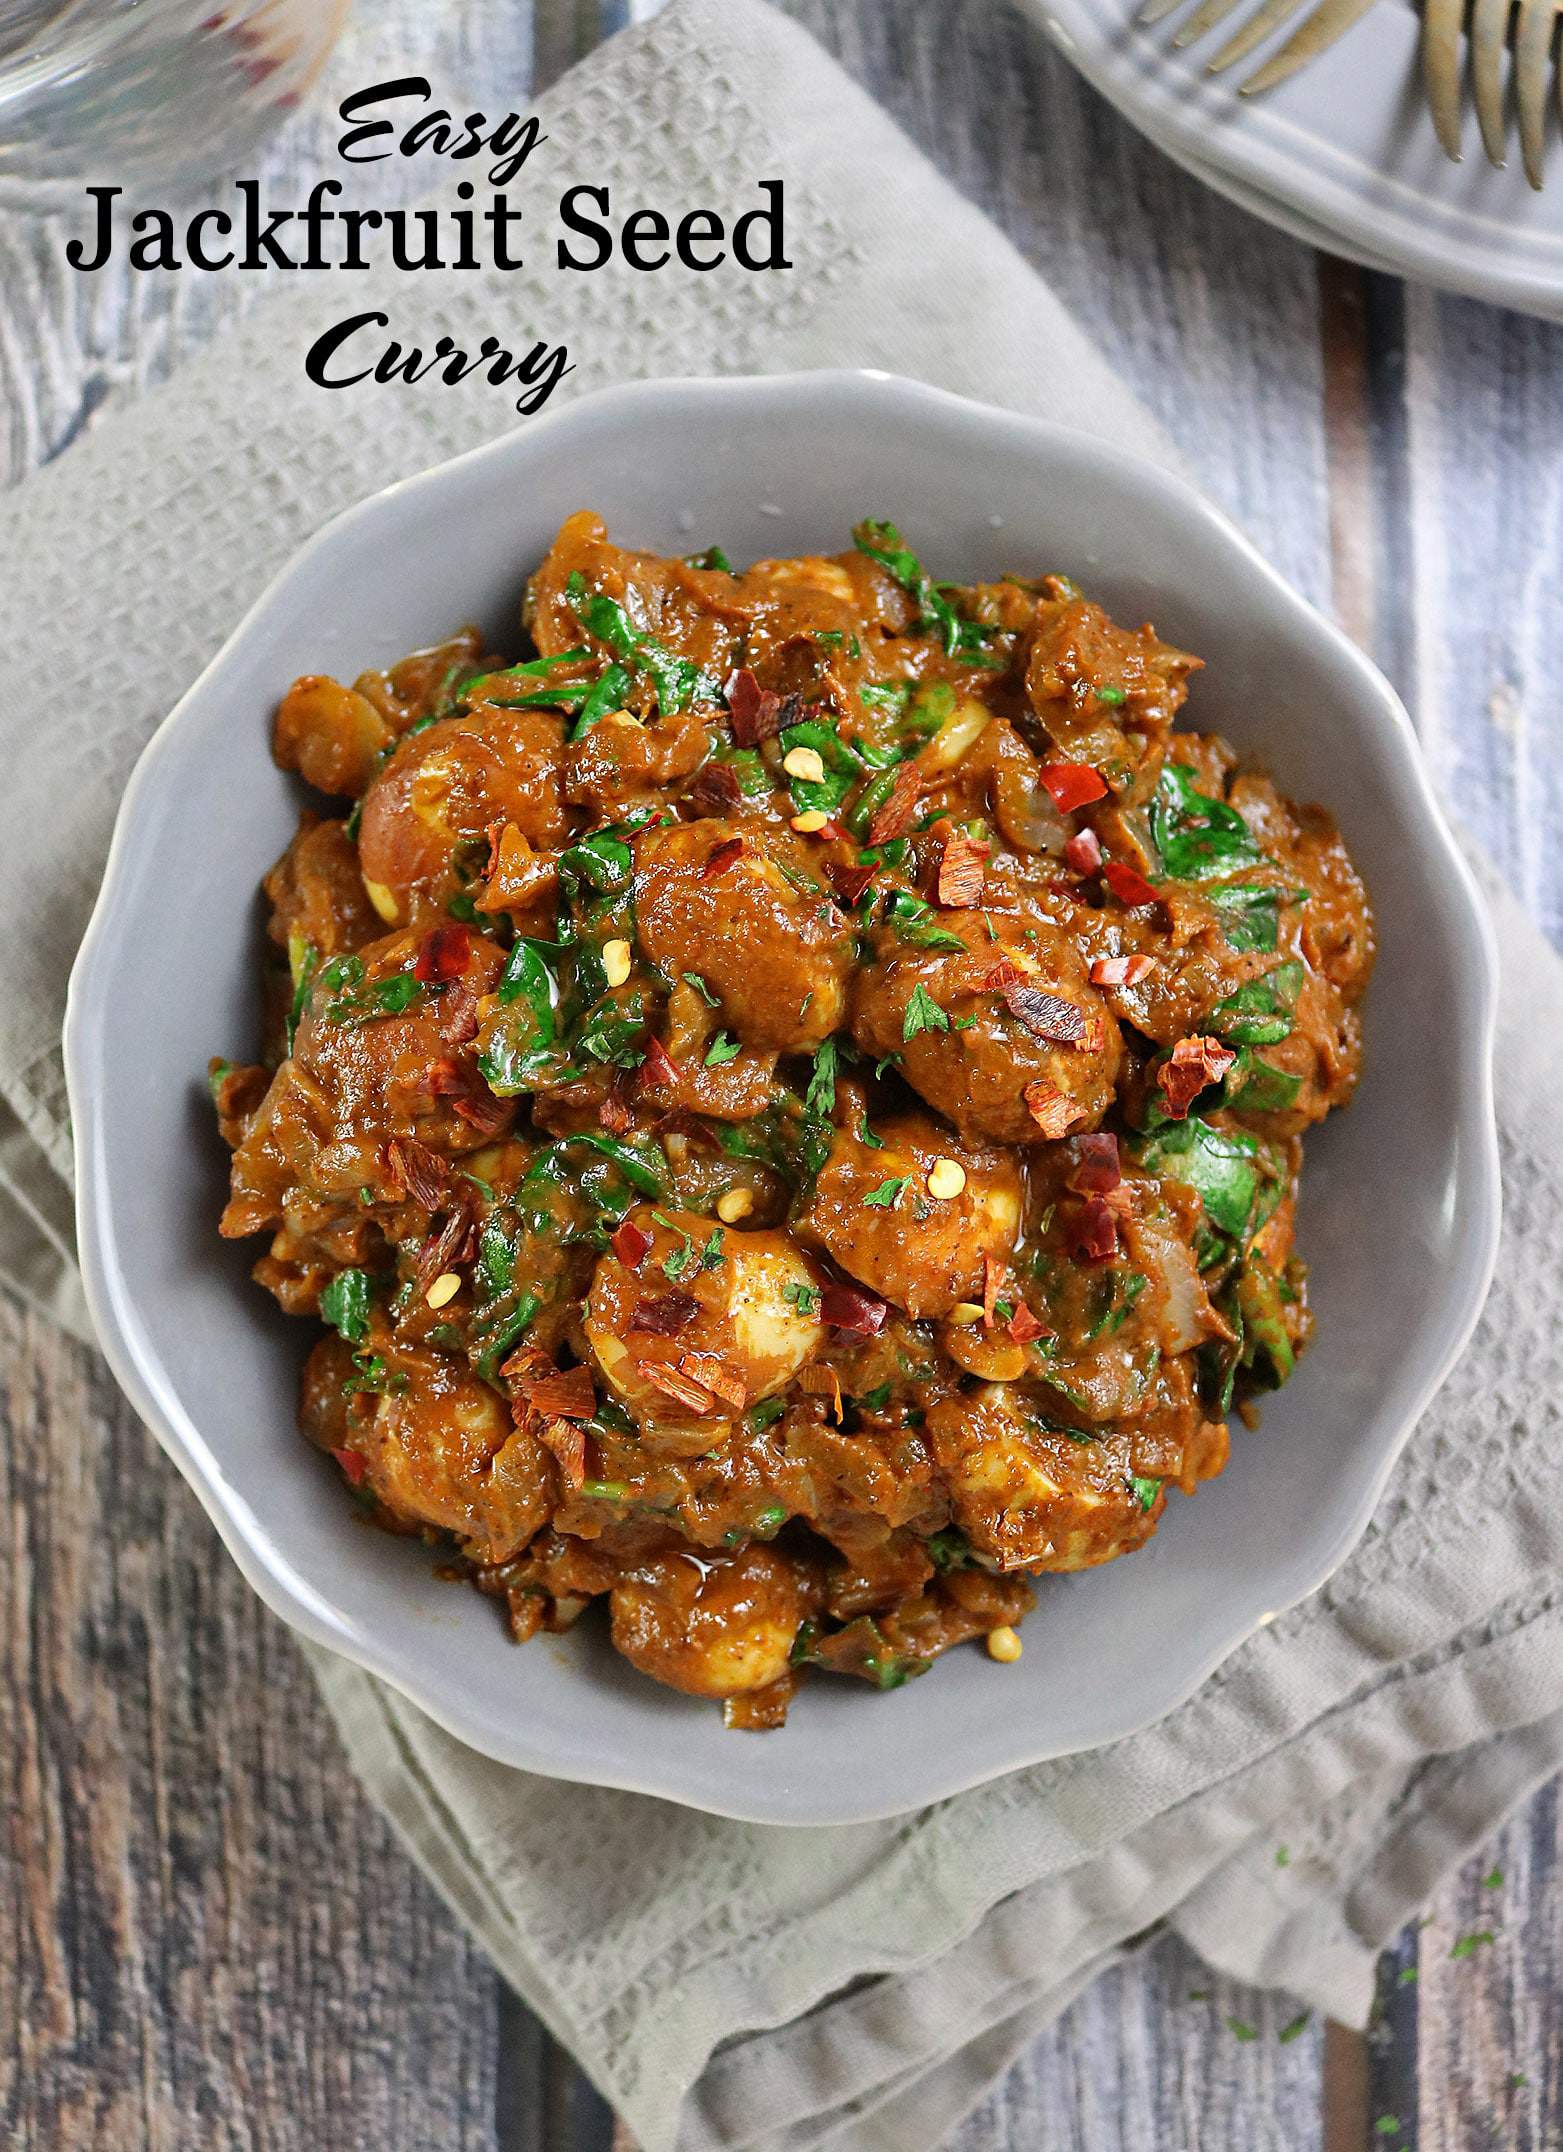 Hearty, Delicious, Easy Jackfruit Seed Curry with Spinach